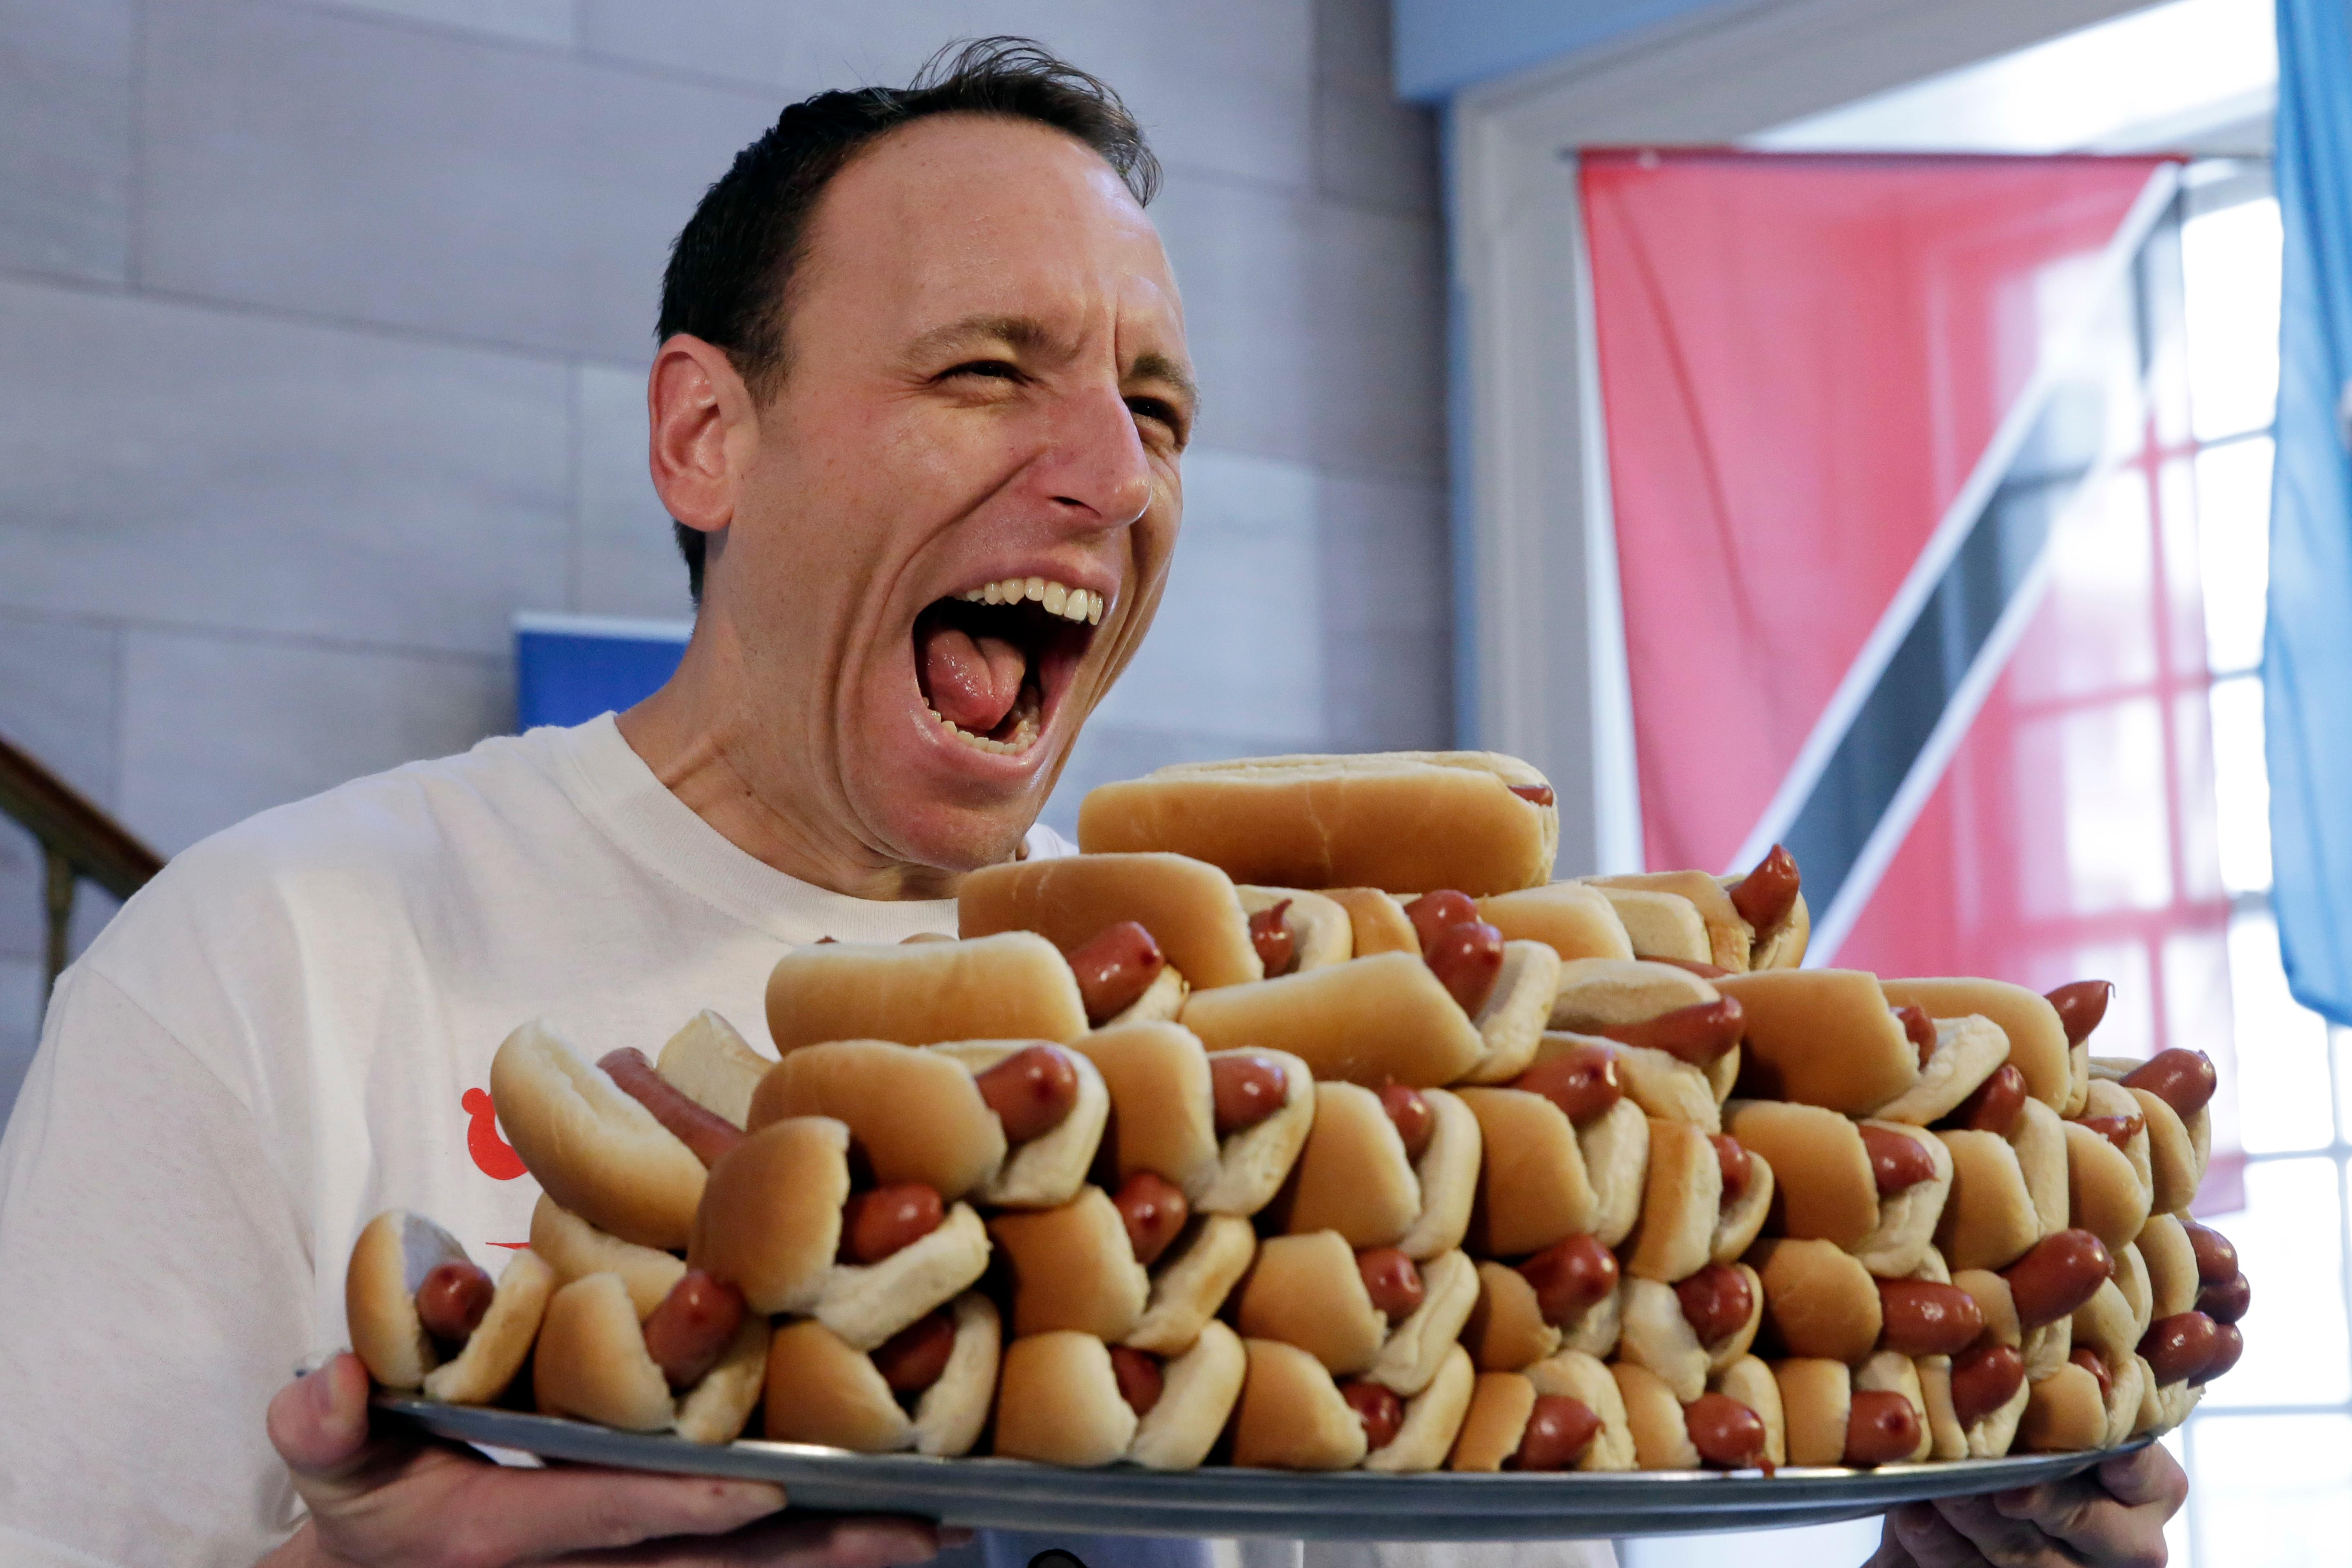 How Much Cost Hot Dog In New York